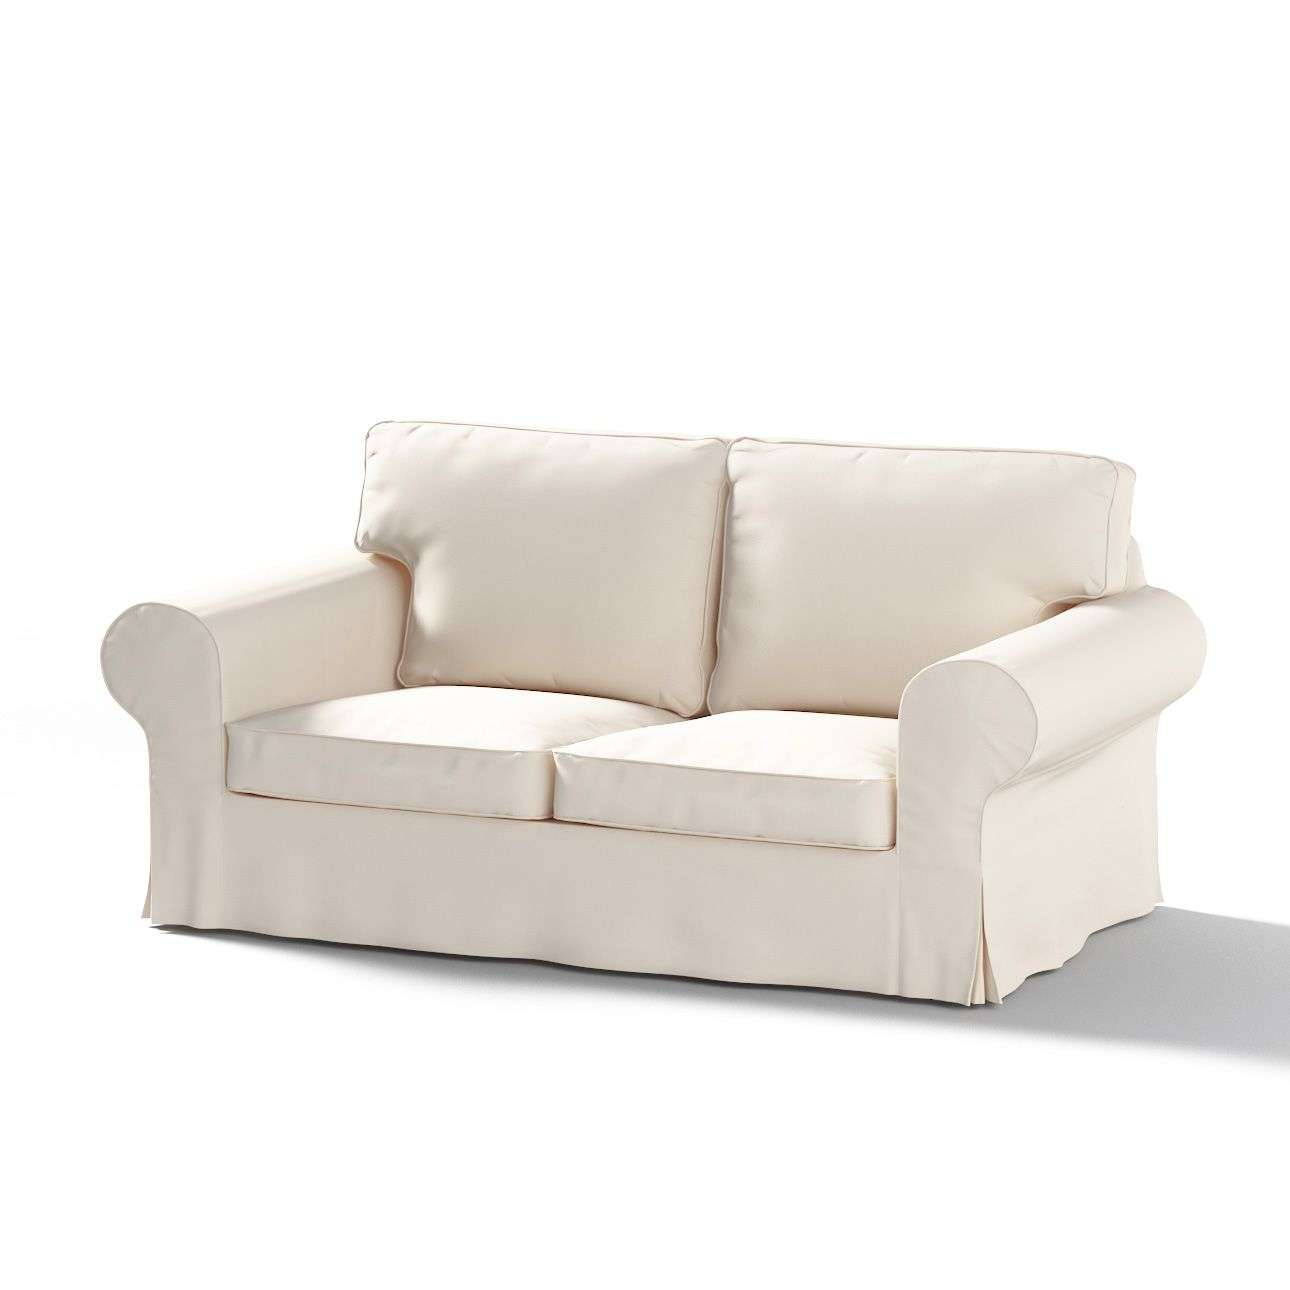 ikea jennylund chair covers uk michigan company ektorp sofa and furniture - dekoria.co.uk